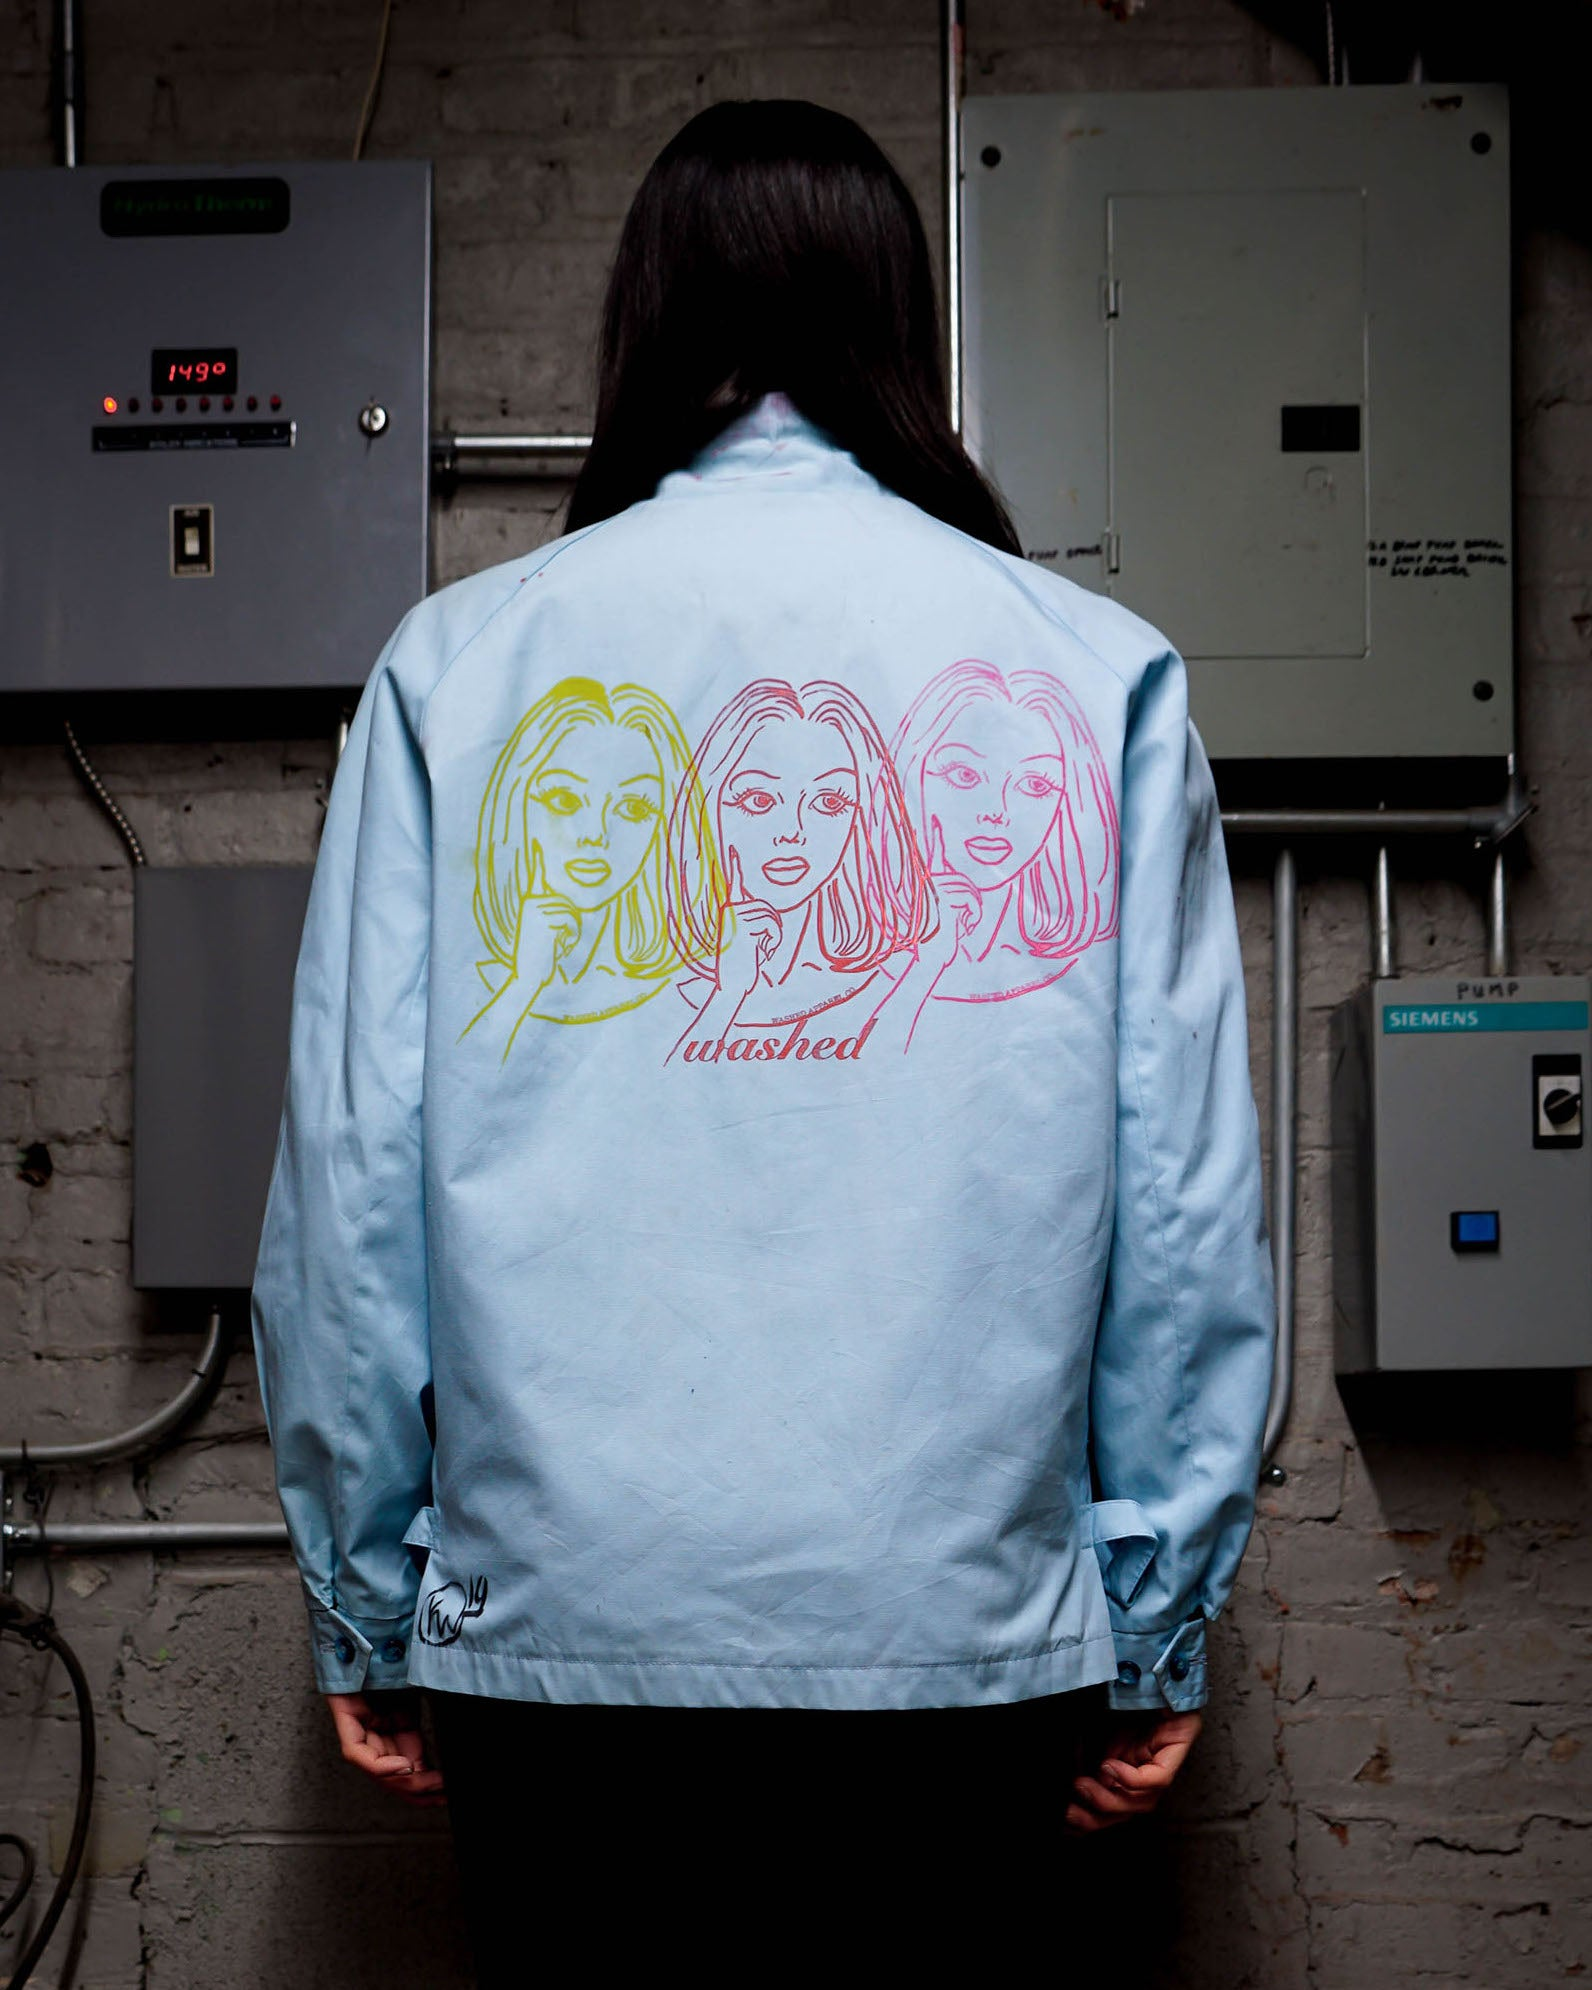 3 Face Print Women's Jacket 1 of 1